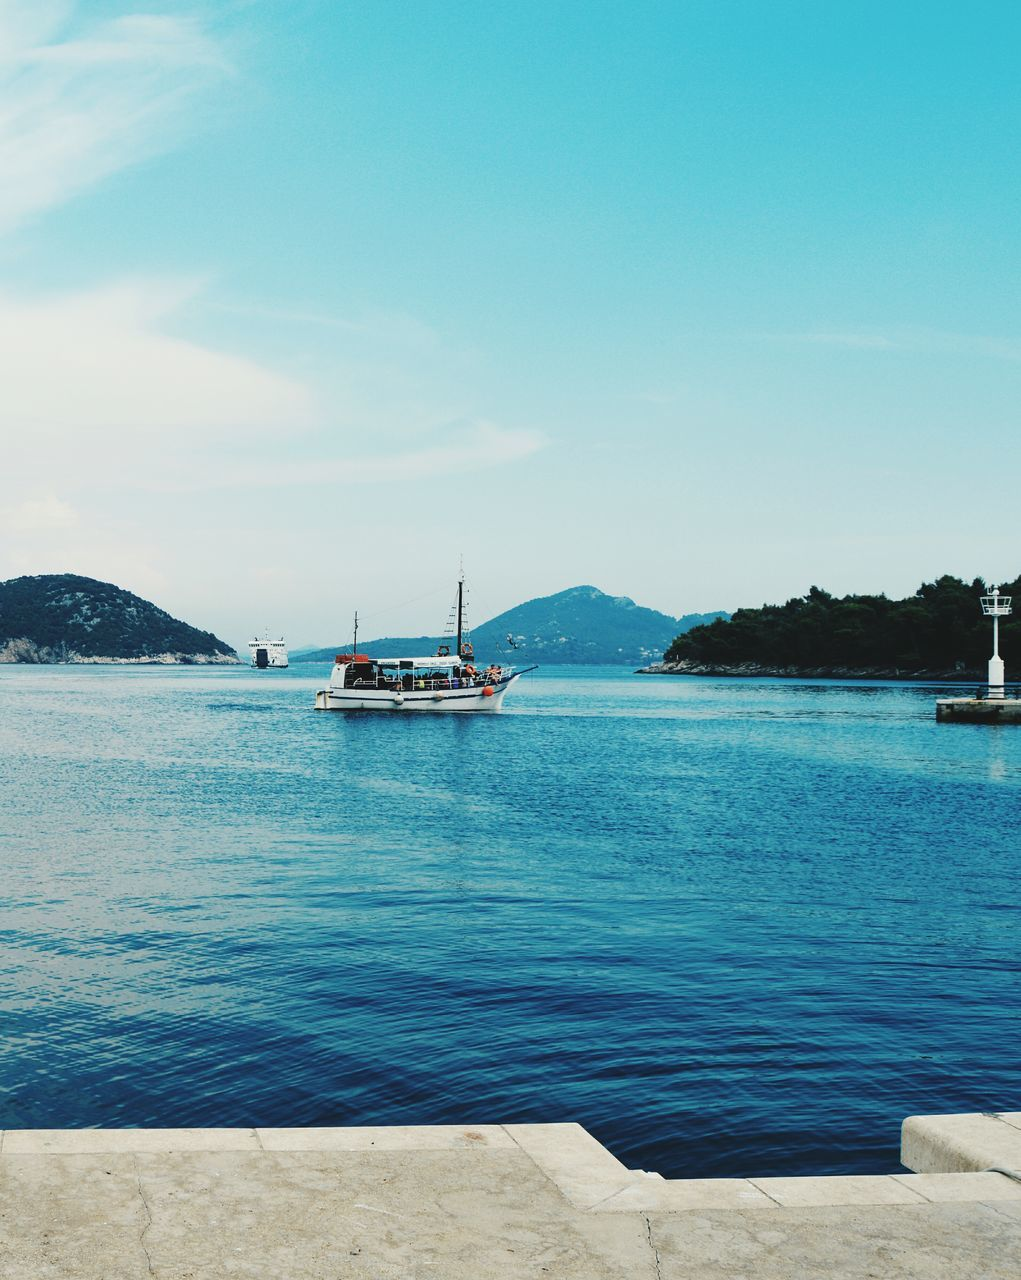 water, nautical vessel, sea, beauty in nature, nature, blue, transportation, scenics, mode of transport, sky, mountain, outdoors, tranquil scene, tranquility, day, travel destinations, cloud - sky, no people, sailboat, vacations, moored